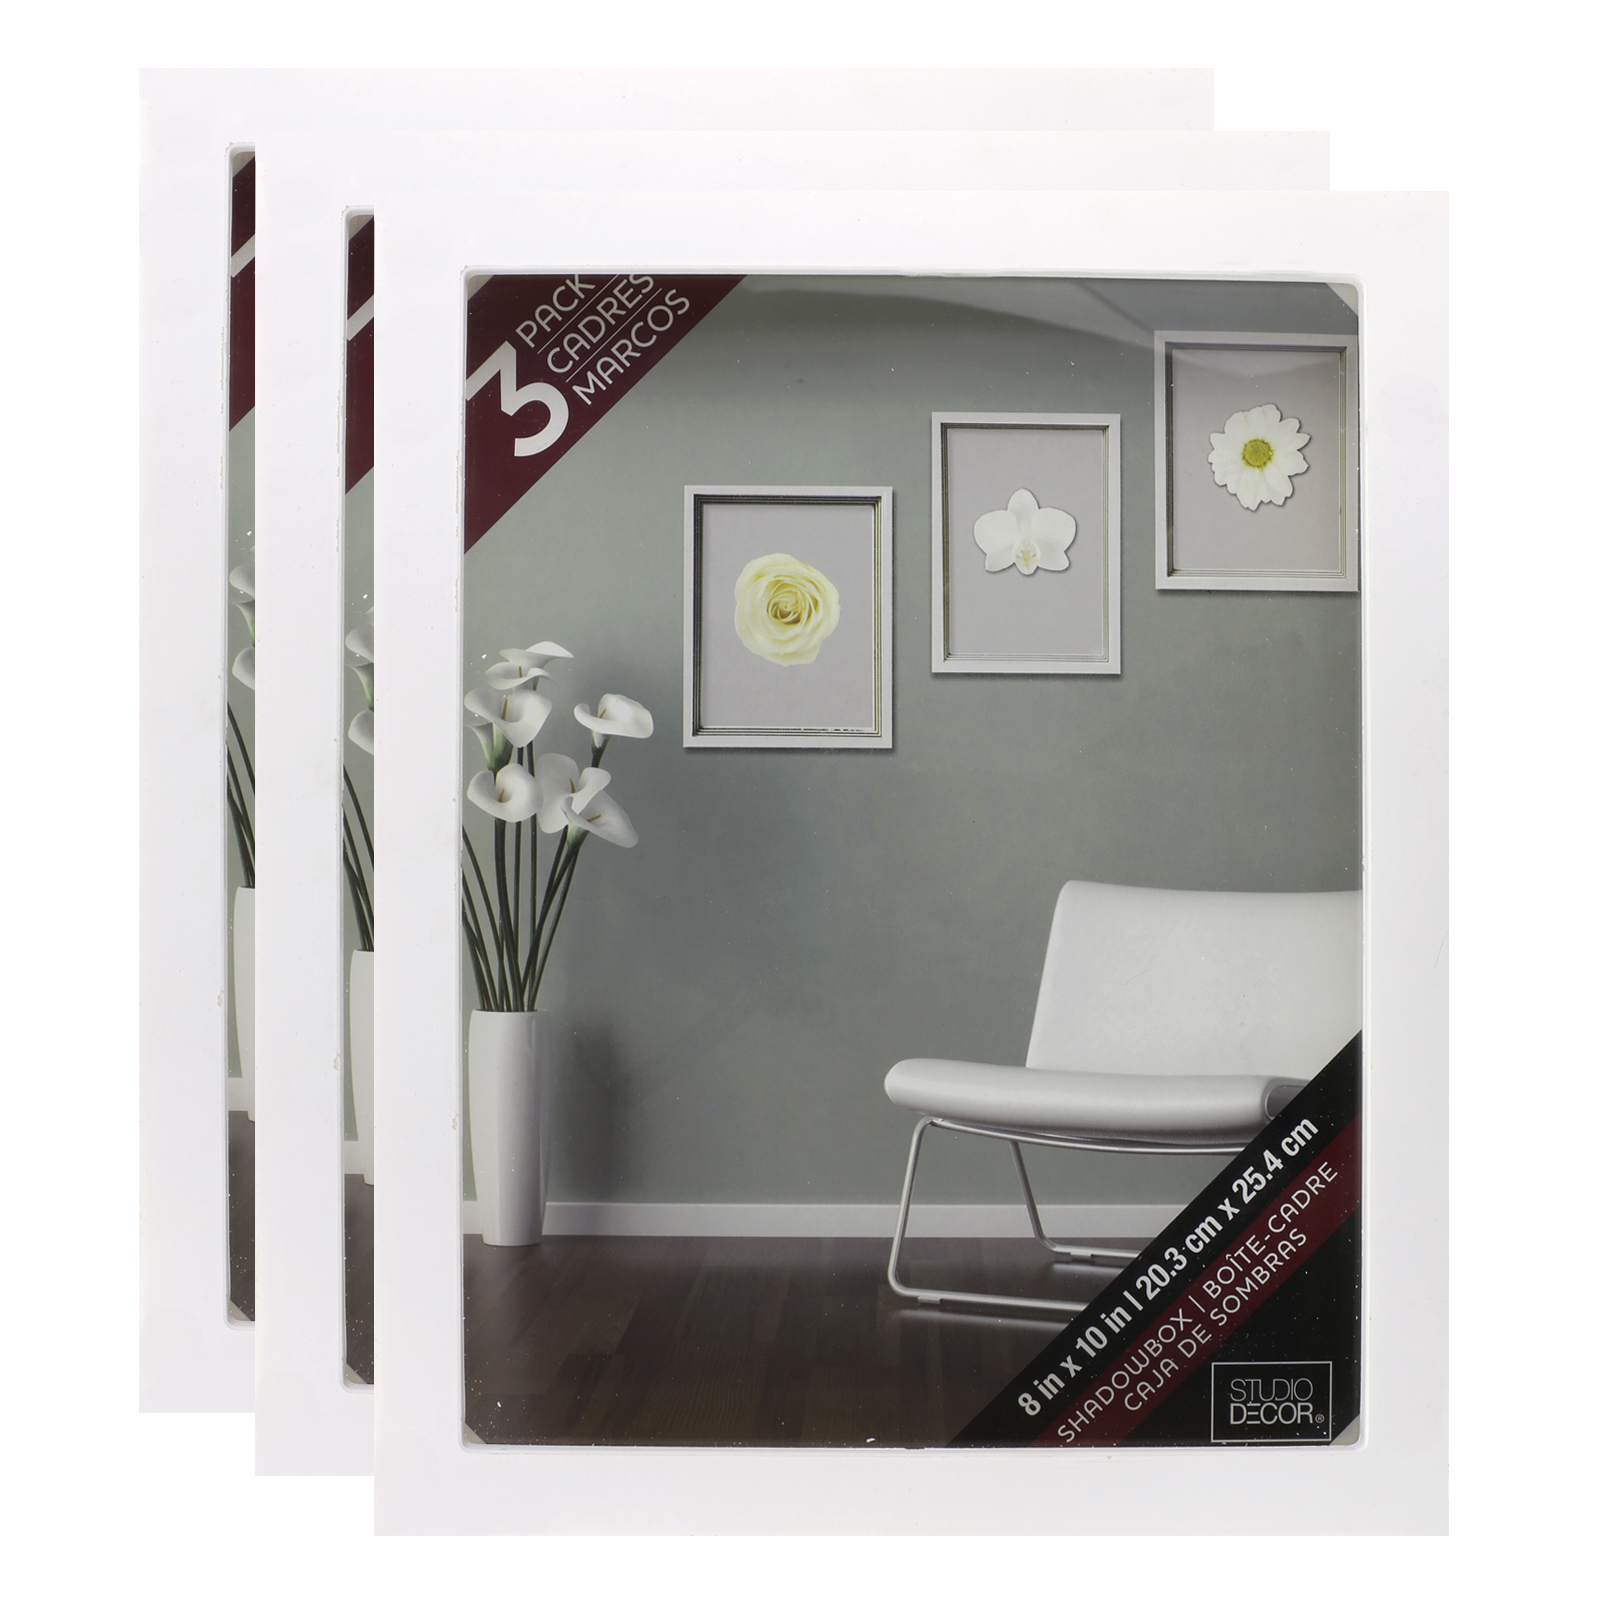 Wall Art Decor Michaels : Pack white shadow box quot by studio d?cor?